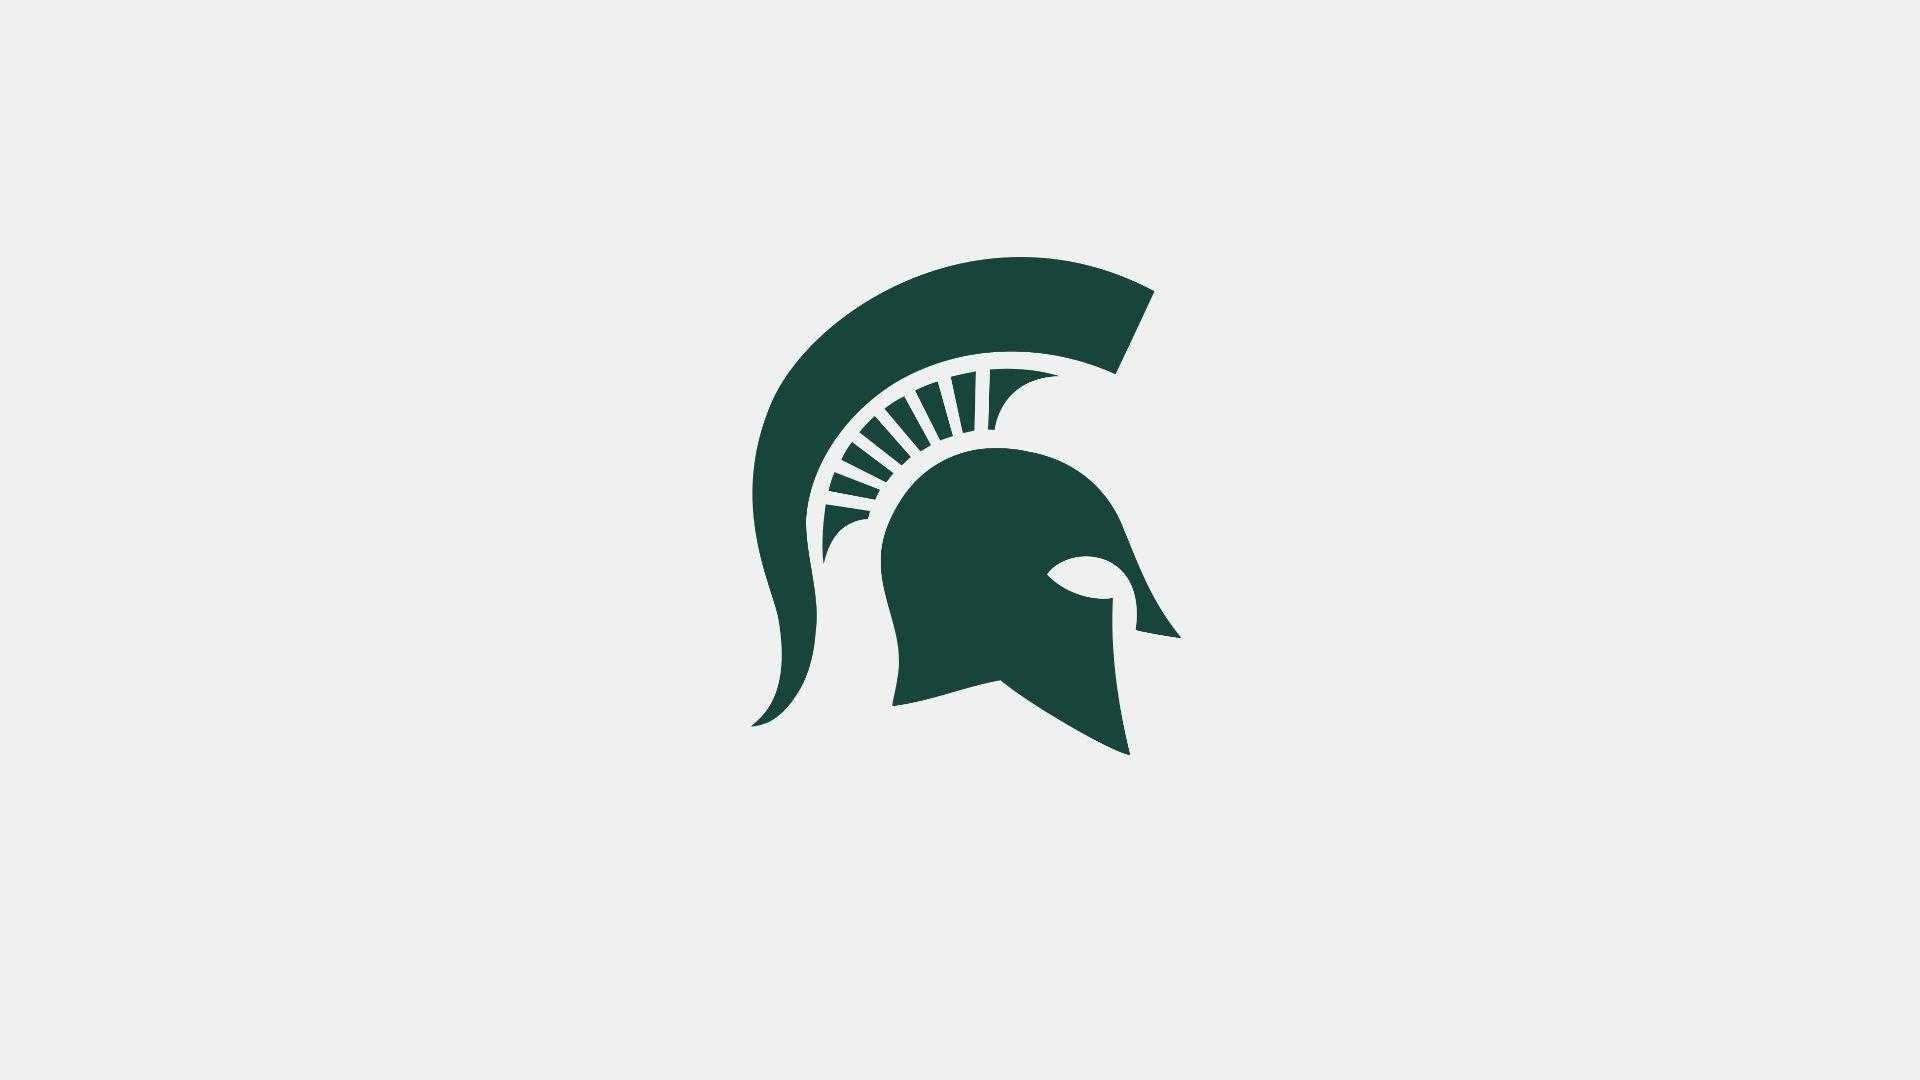 Res: 1920x1080, Msu Football Schedule Wallpaper High Resolution Michigan State Of Androids